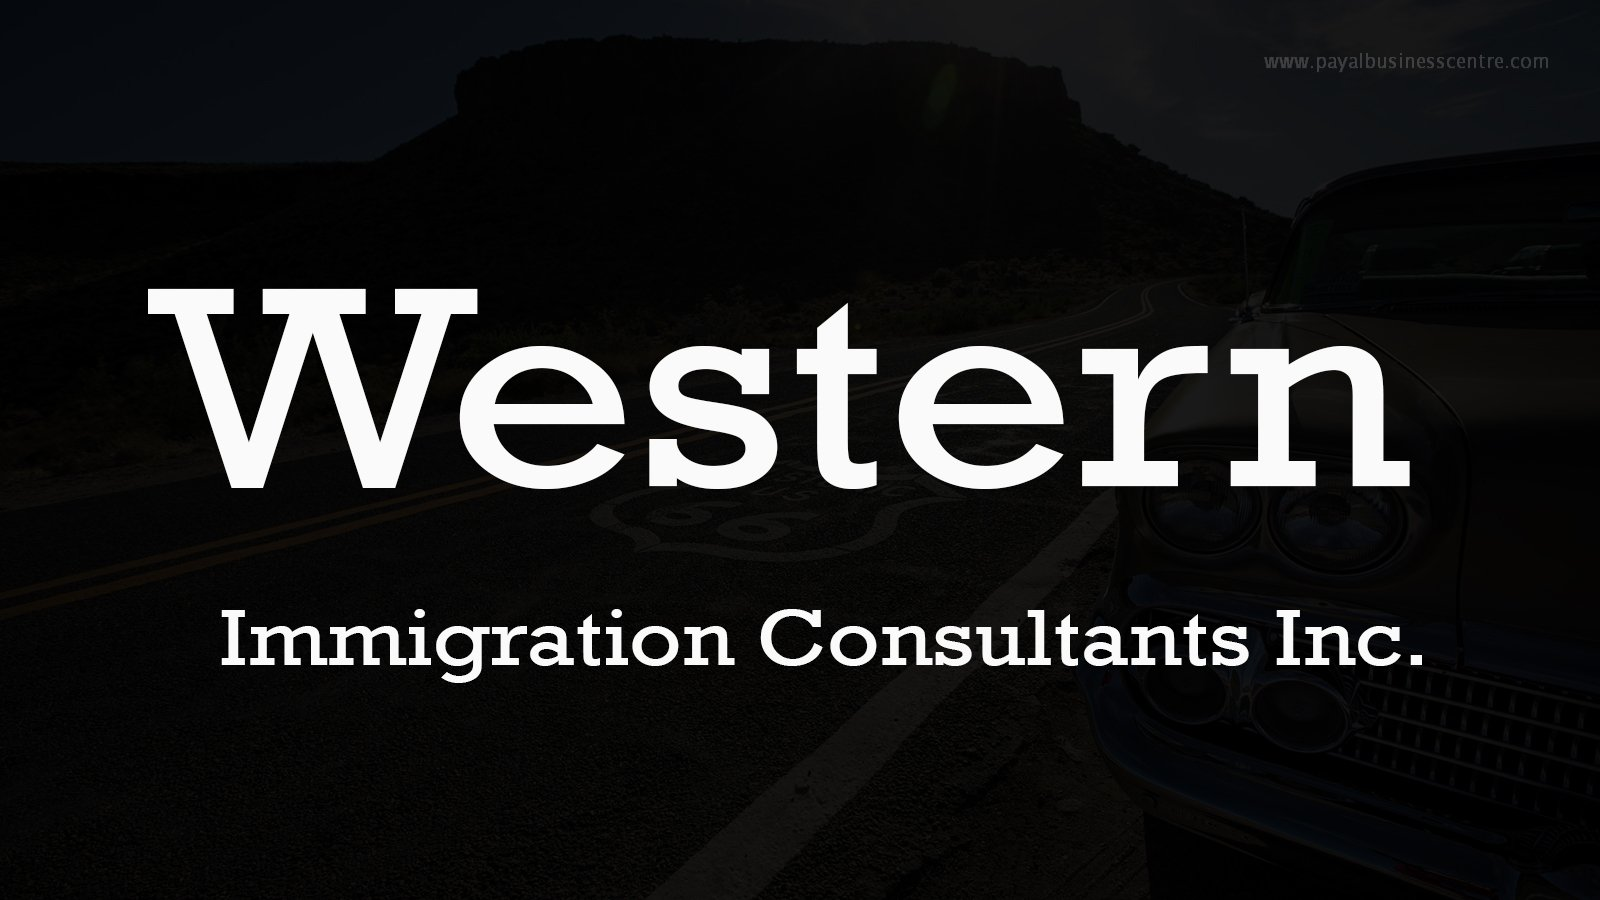 Western Immigration Consultants Inc.